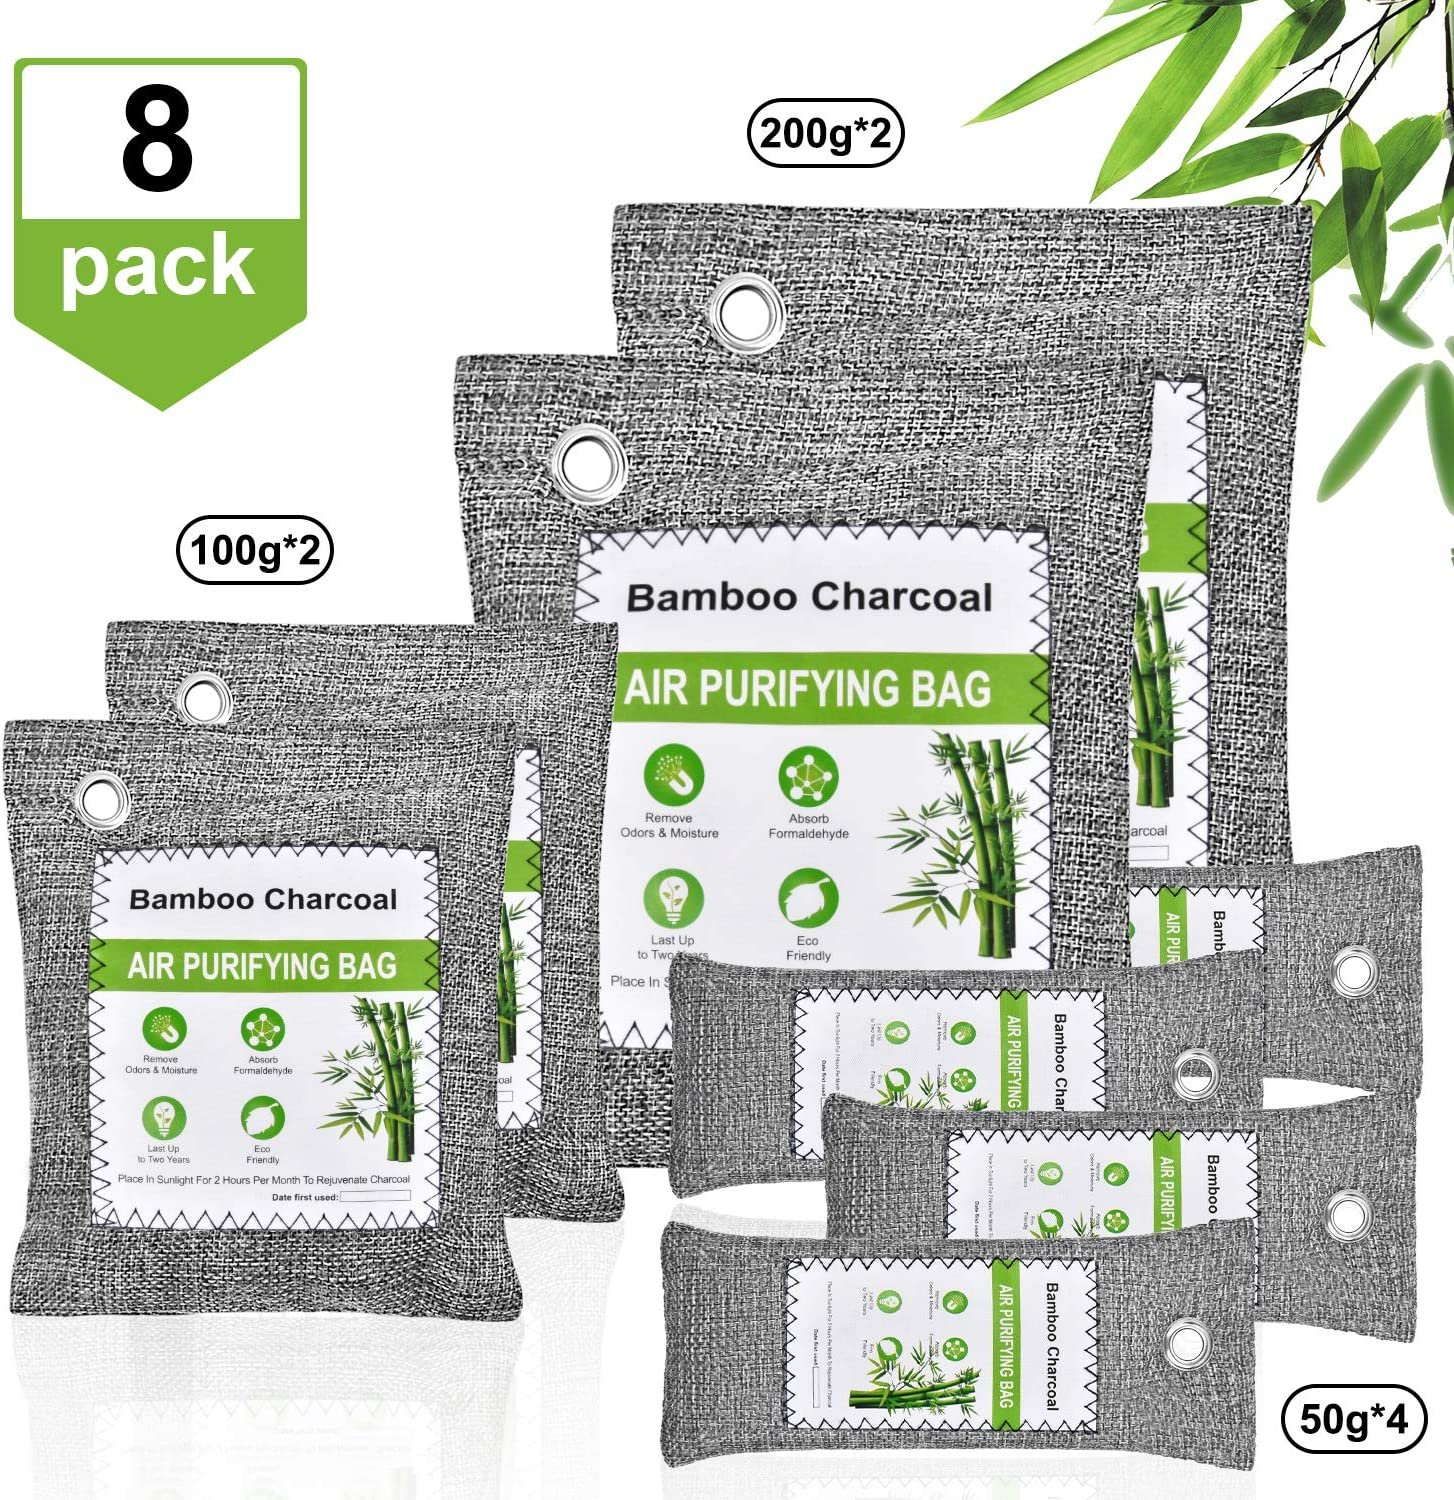 chappfier 8 Pack Activated Bamboo Charcoal Bags Odor Absorber, Nature Fresh Charcoal Air Purifying Bag Odor Eliminator, Shoe Odor Deodorizer Bag for Shoes, Gym Bag, Home, Pet, Closet